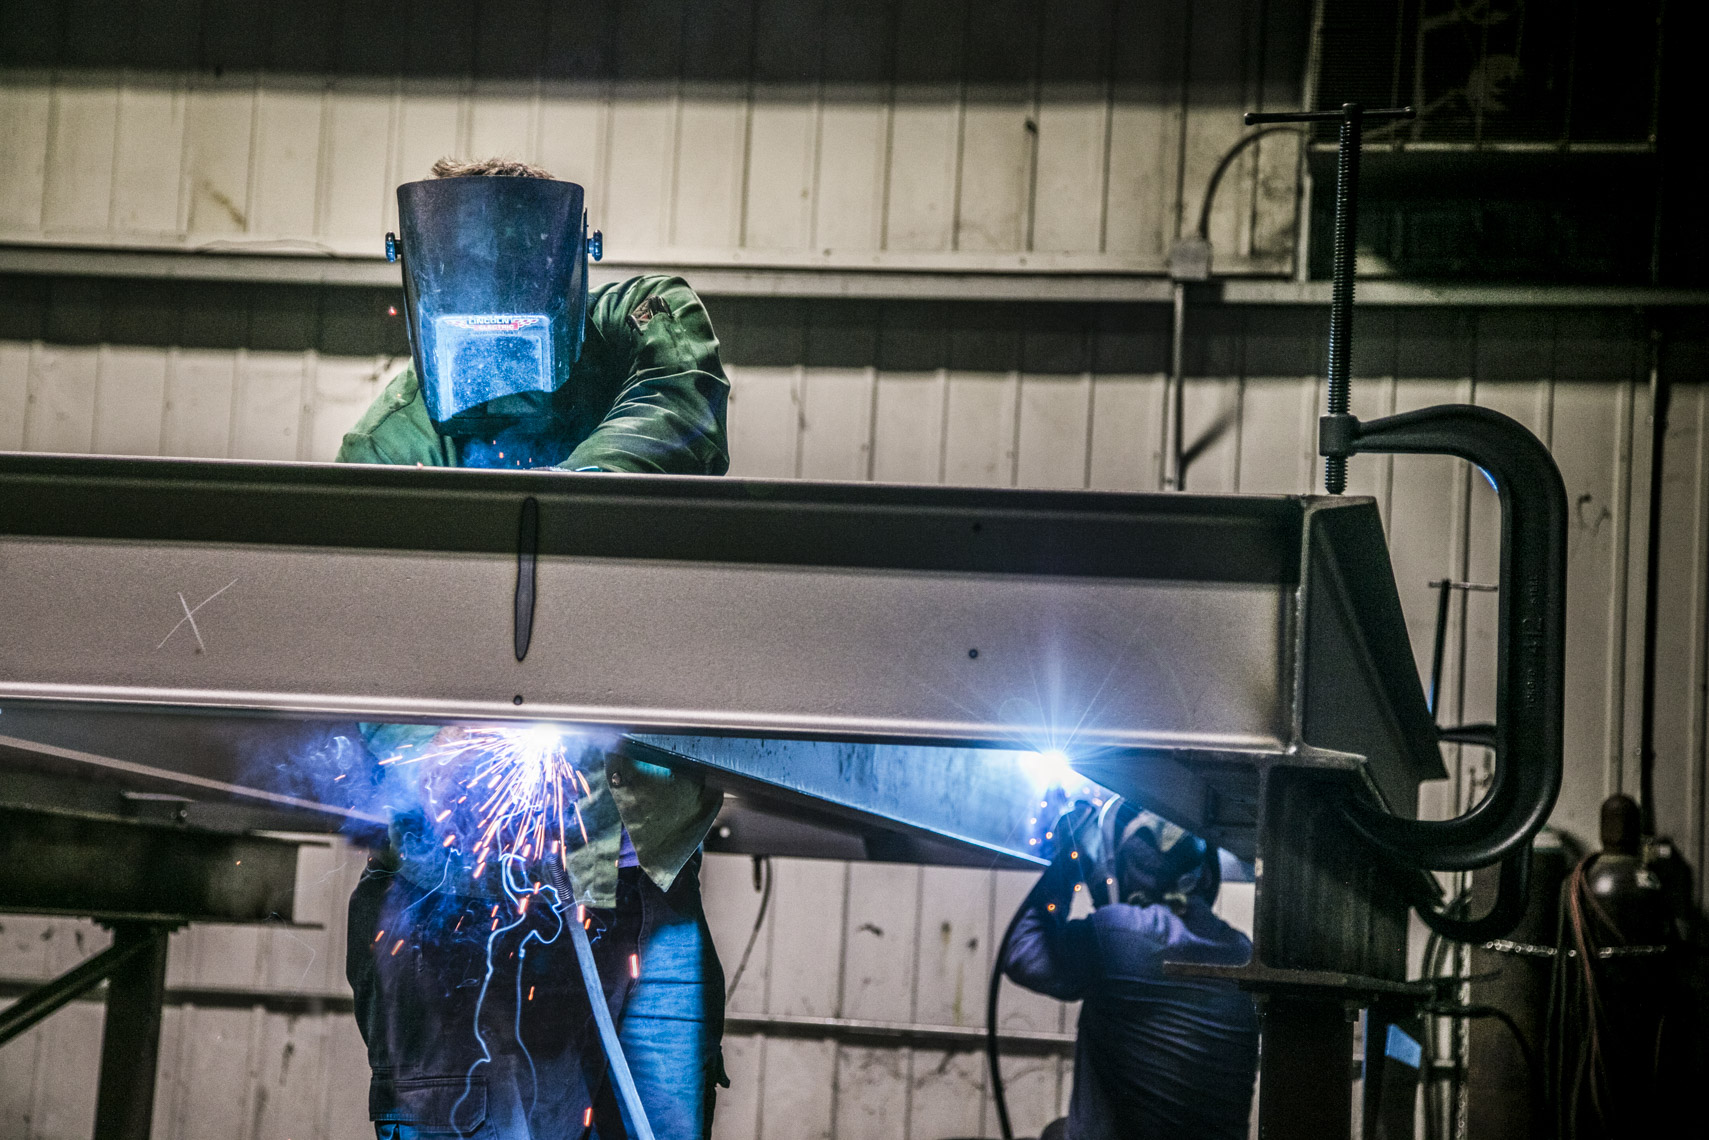 Workers welding metal at a small business in West Virginia.